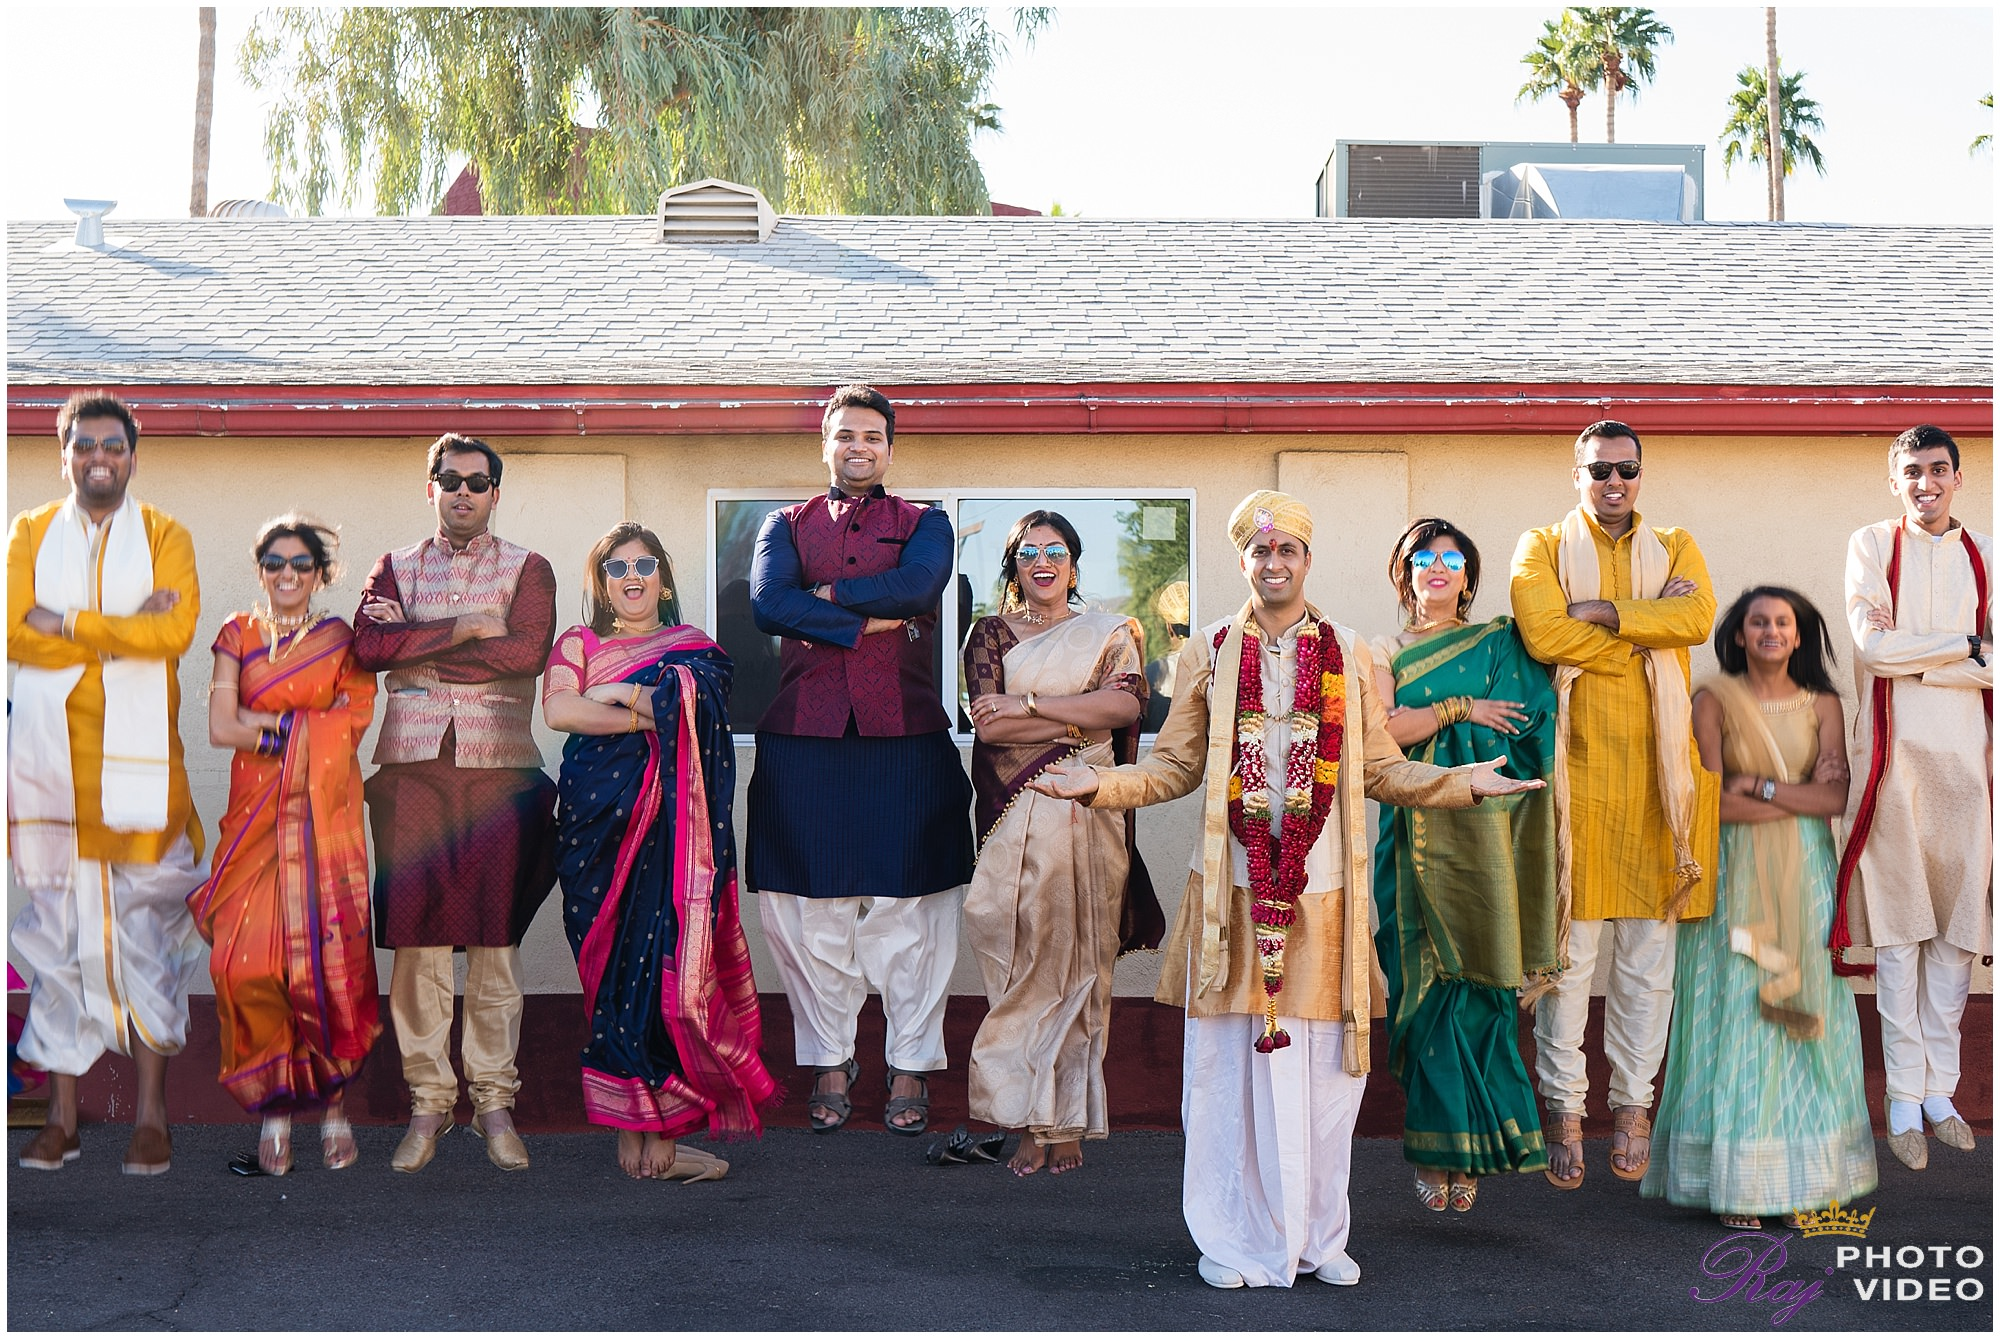 Sri_Venkata_Krishna_Kshetra_Temple_Tempe_Arizona_Indian_Wedding_Sapna_Shyam-4.jpg